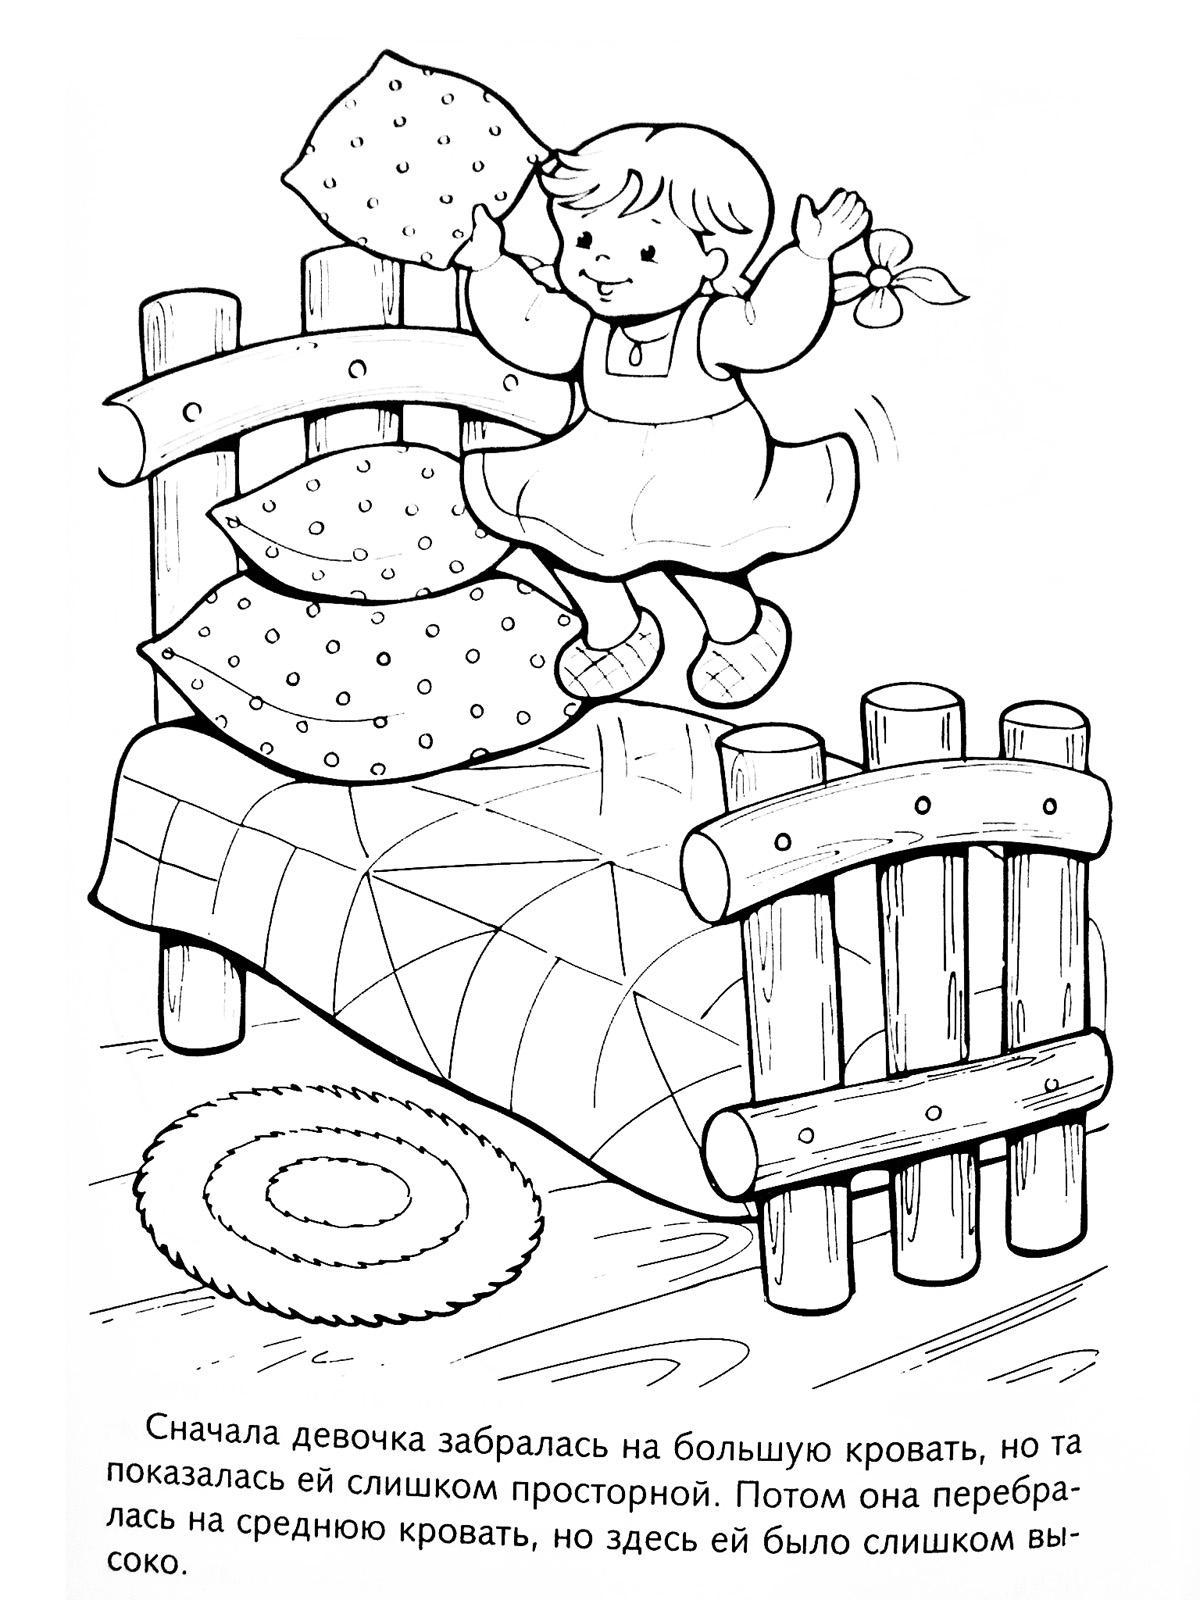 Coloring coloring pages to the tale of three bears Girl jumping on the bed, the Three Bears fairy tale coloring pages